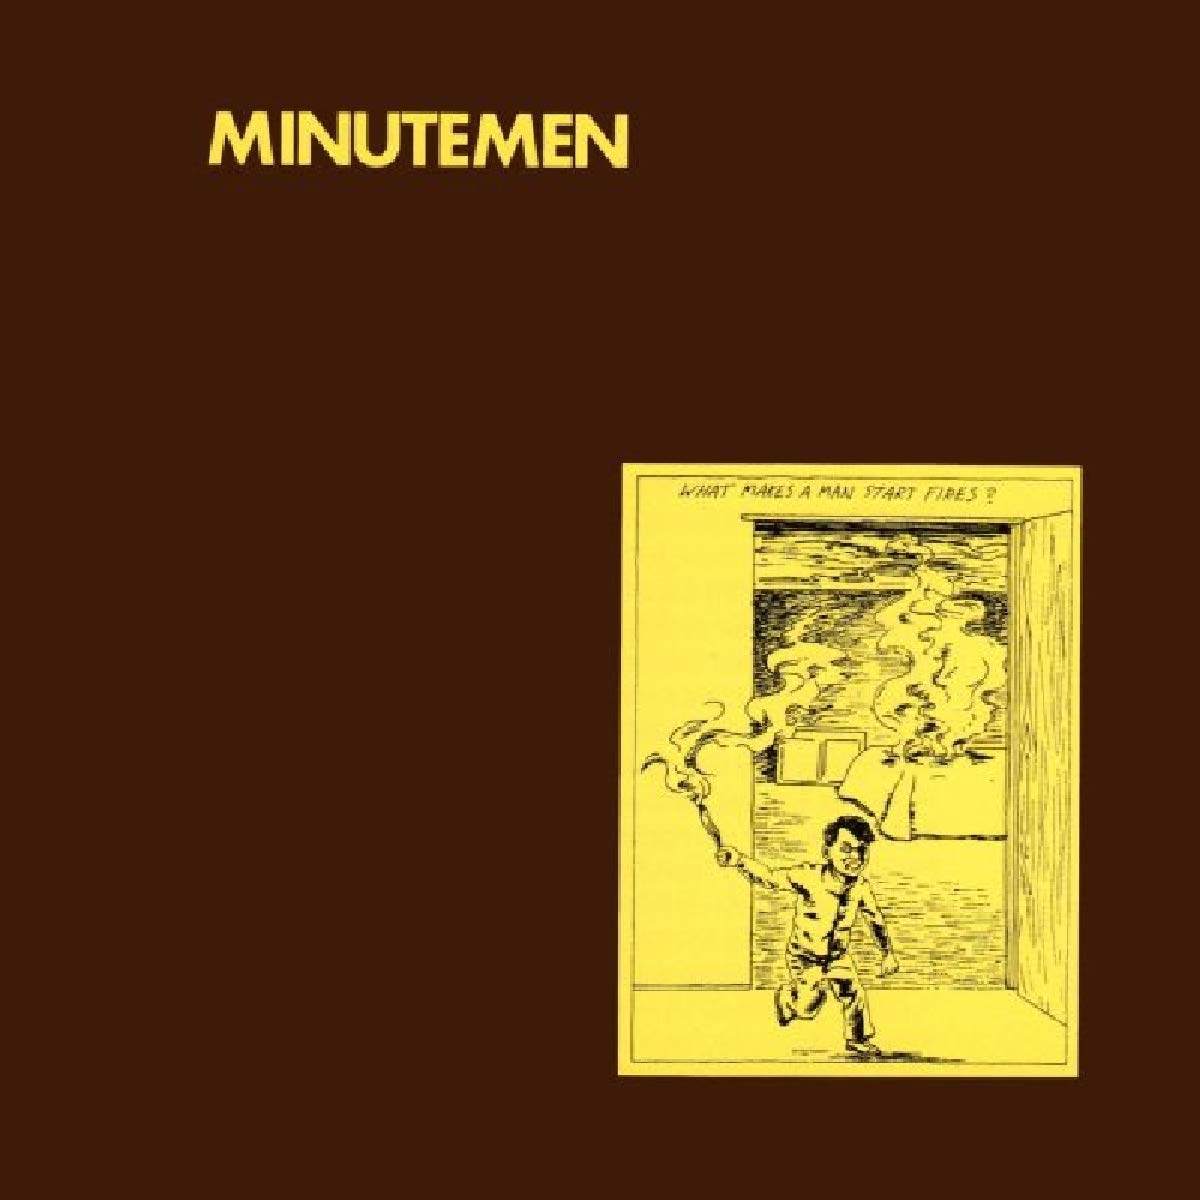 MINUTEMEN - What Makes a Man Start Fires? - Amazon.com Music